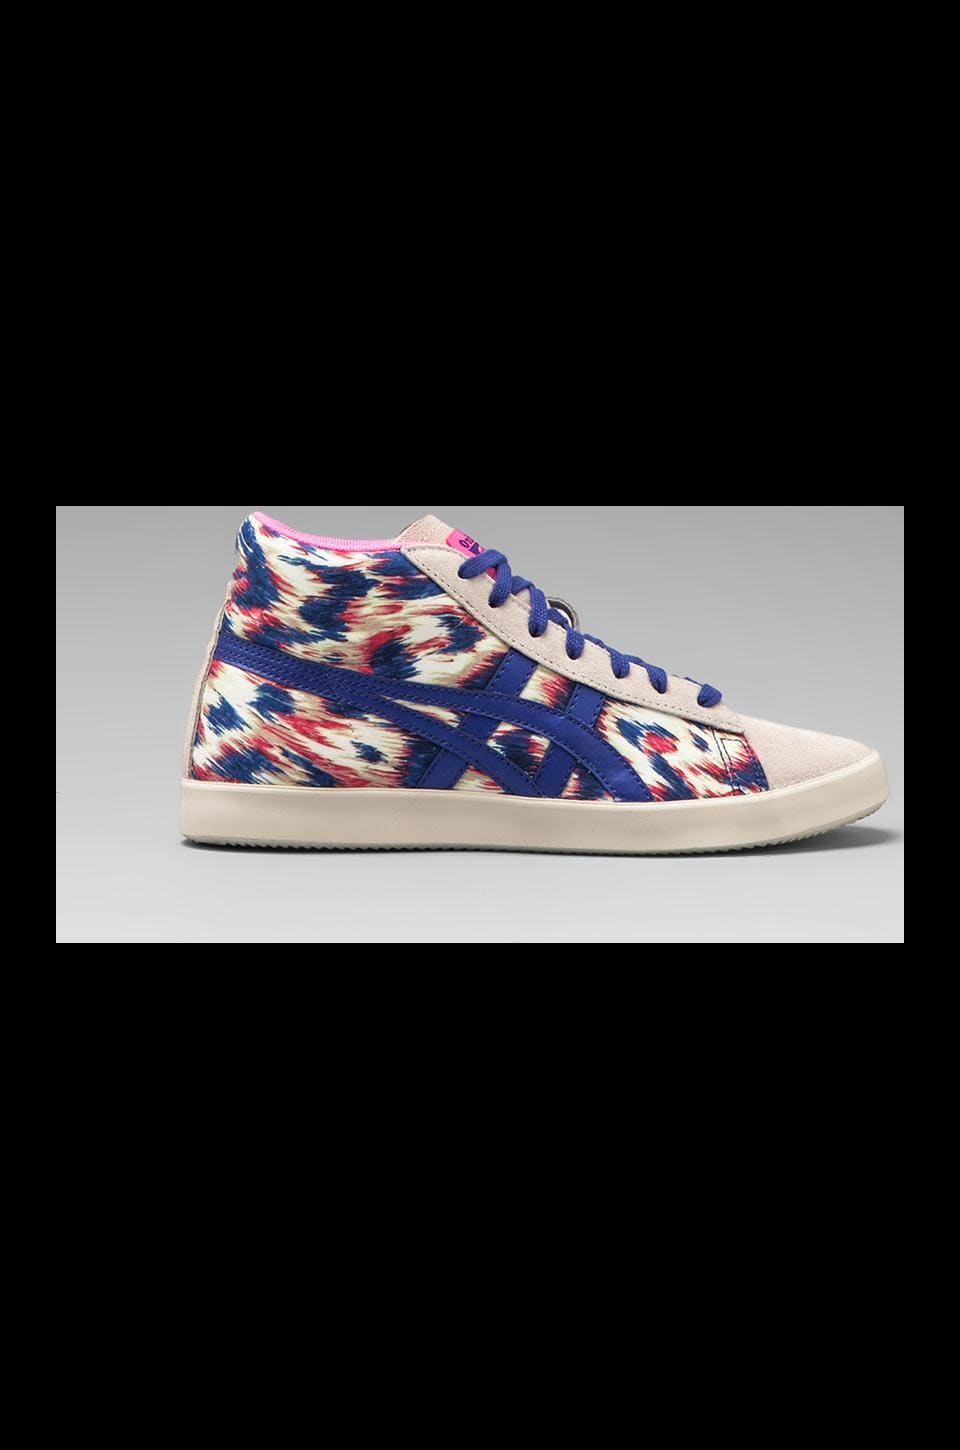 Onitsuka Tiger LIBERTY ART Grandest Sneakers in Emilie's/Dark Blue